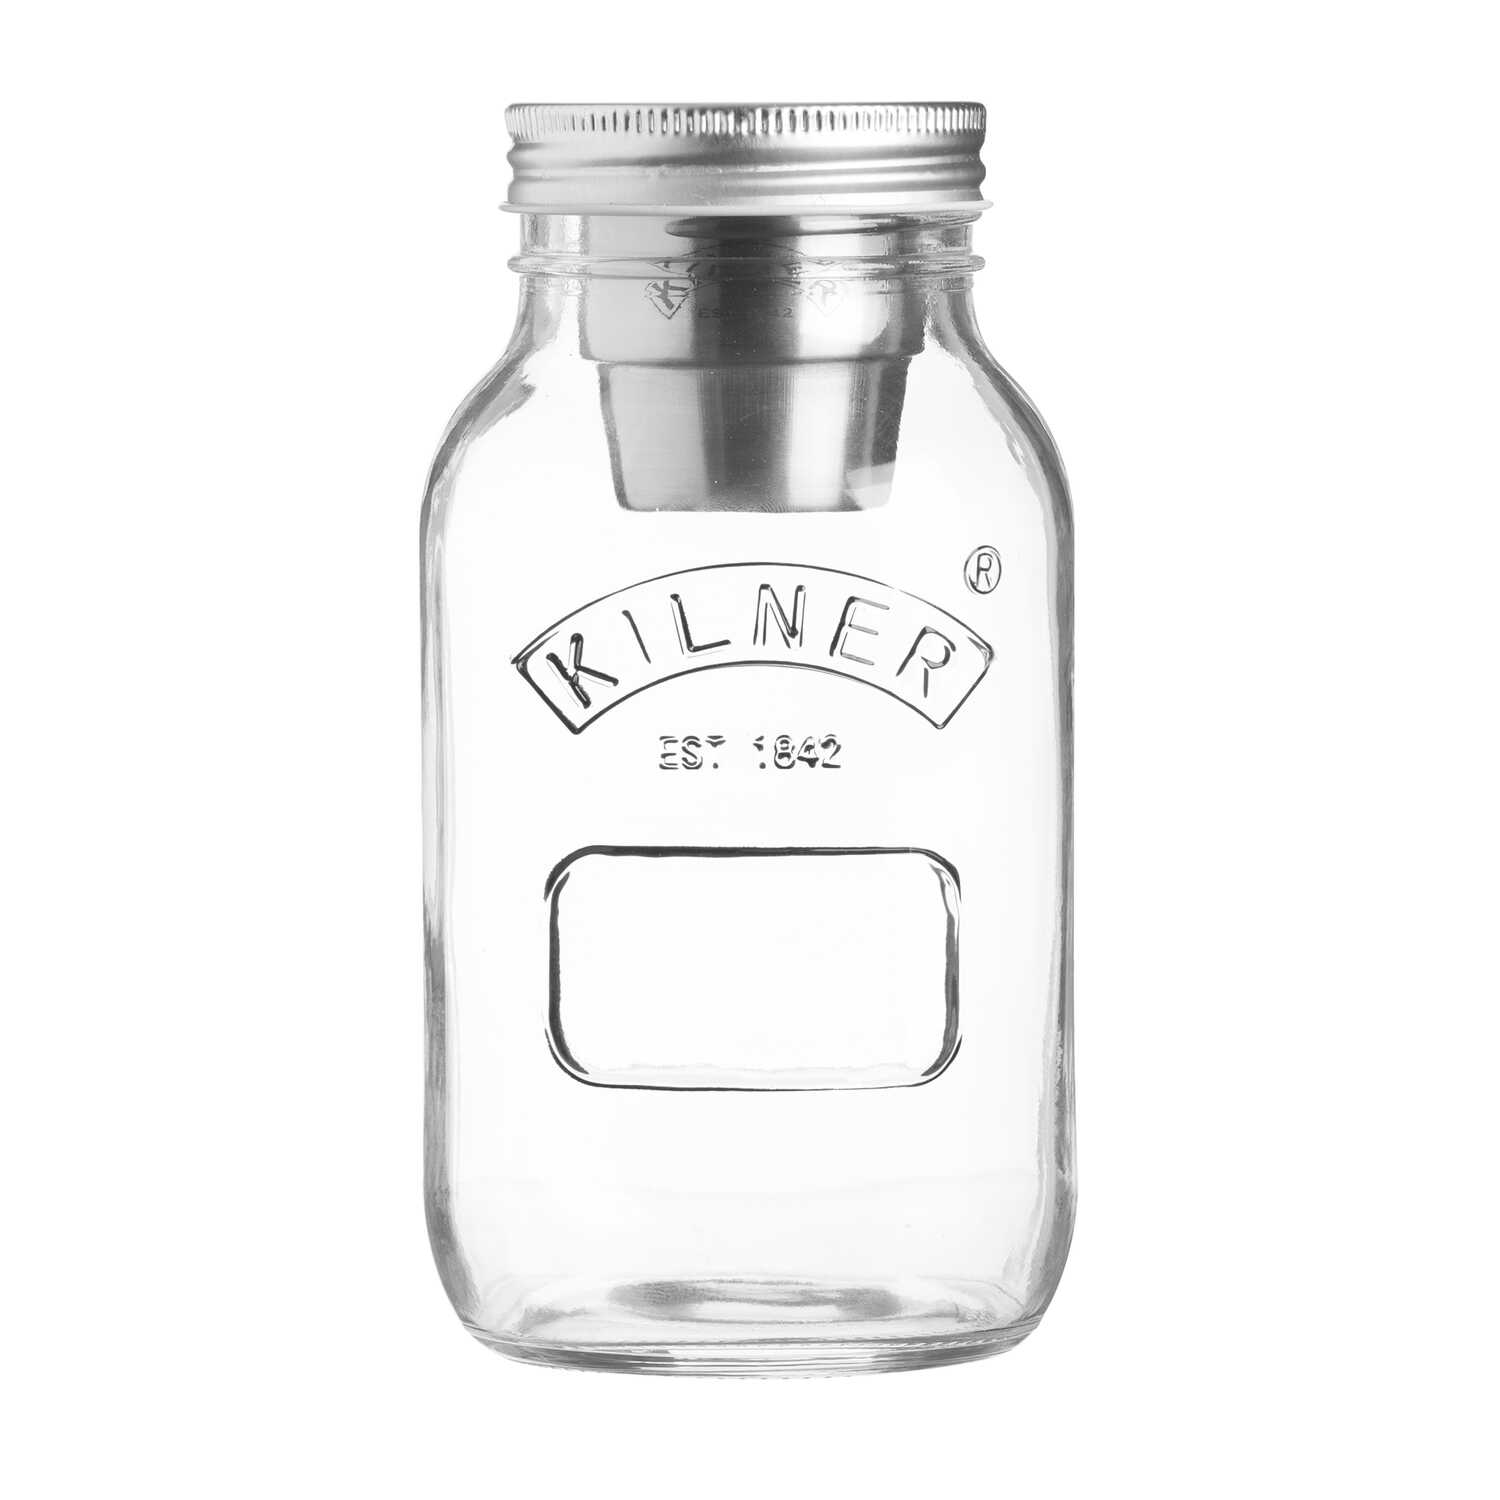 Kilner  Food To Go Container  1 pk 34 oz.